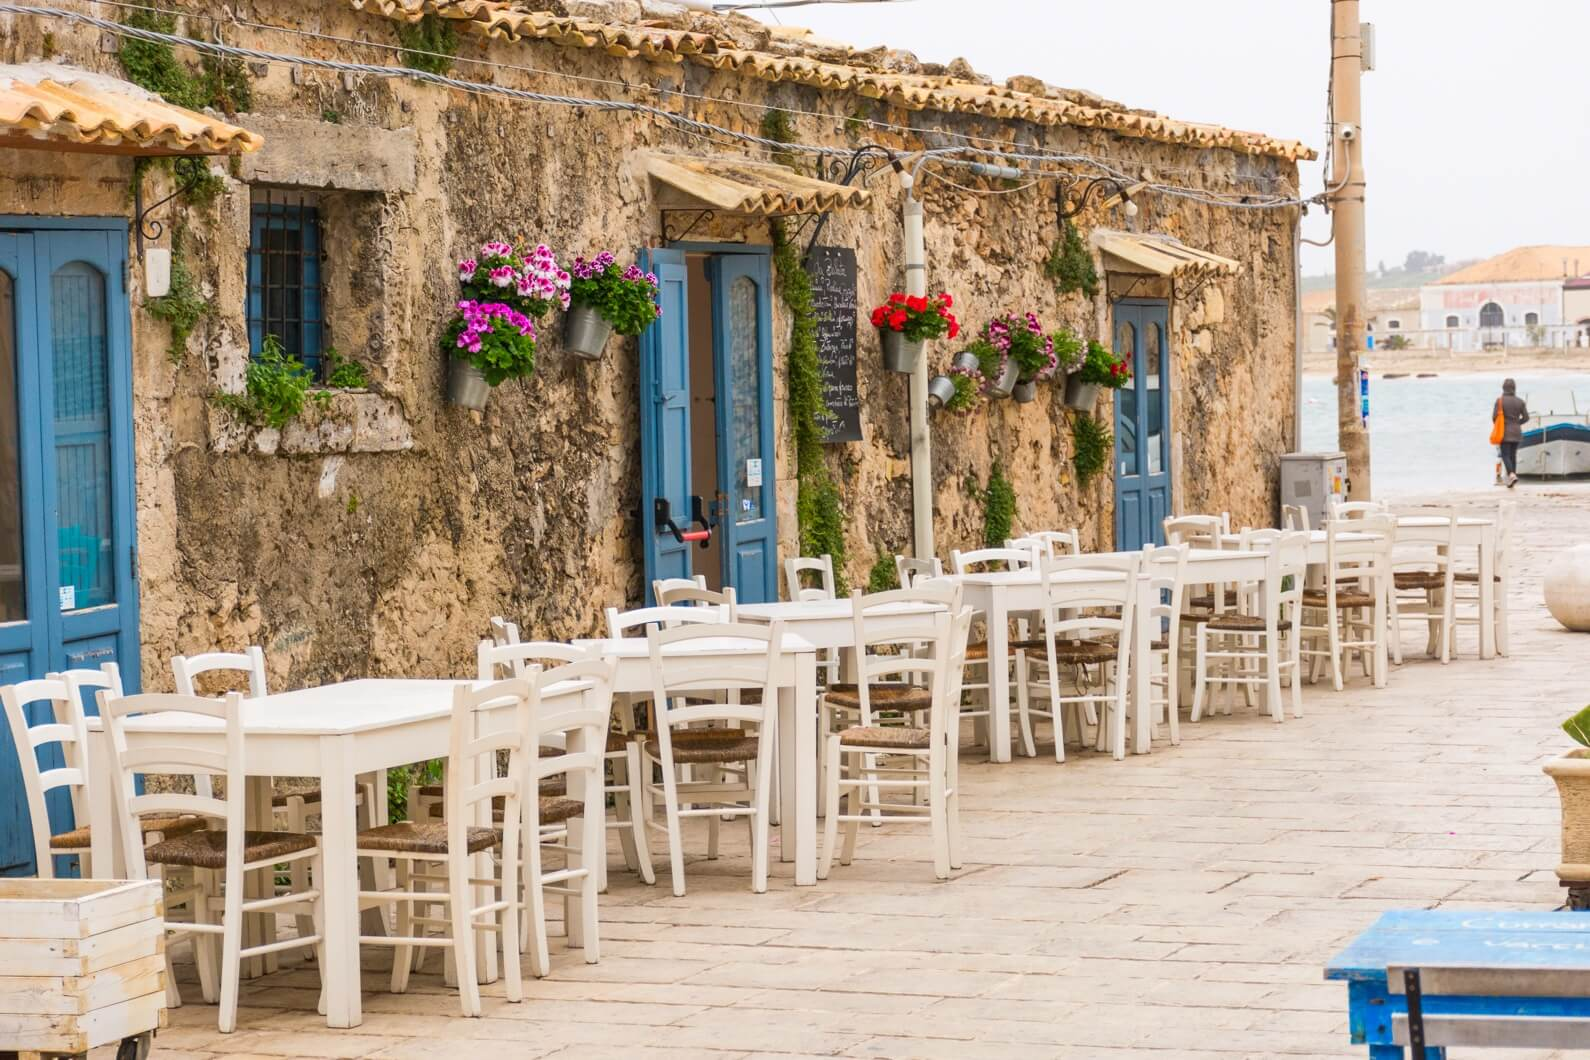 Location rustica per matrimonio in Sicilia